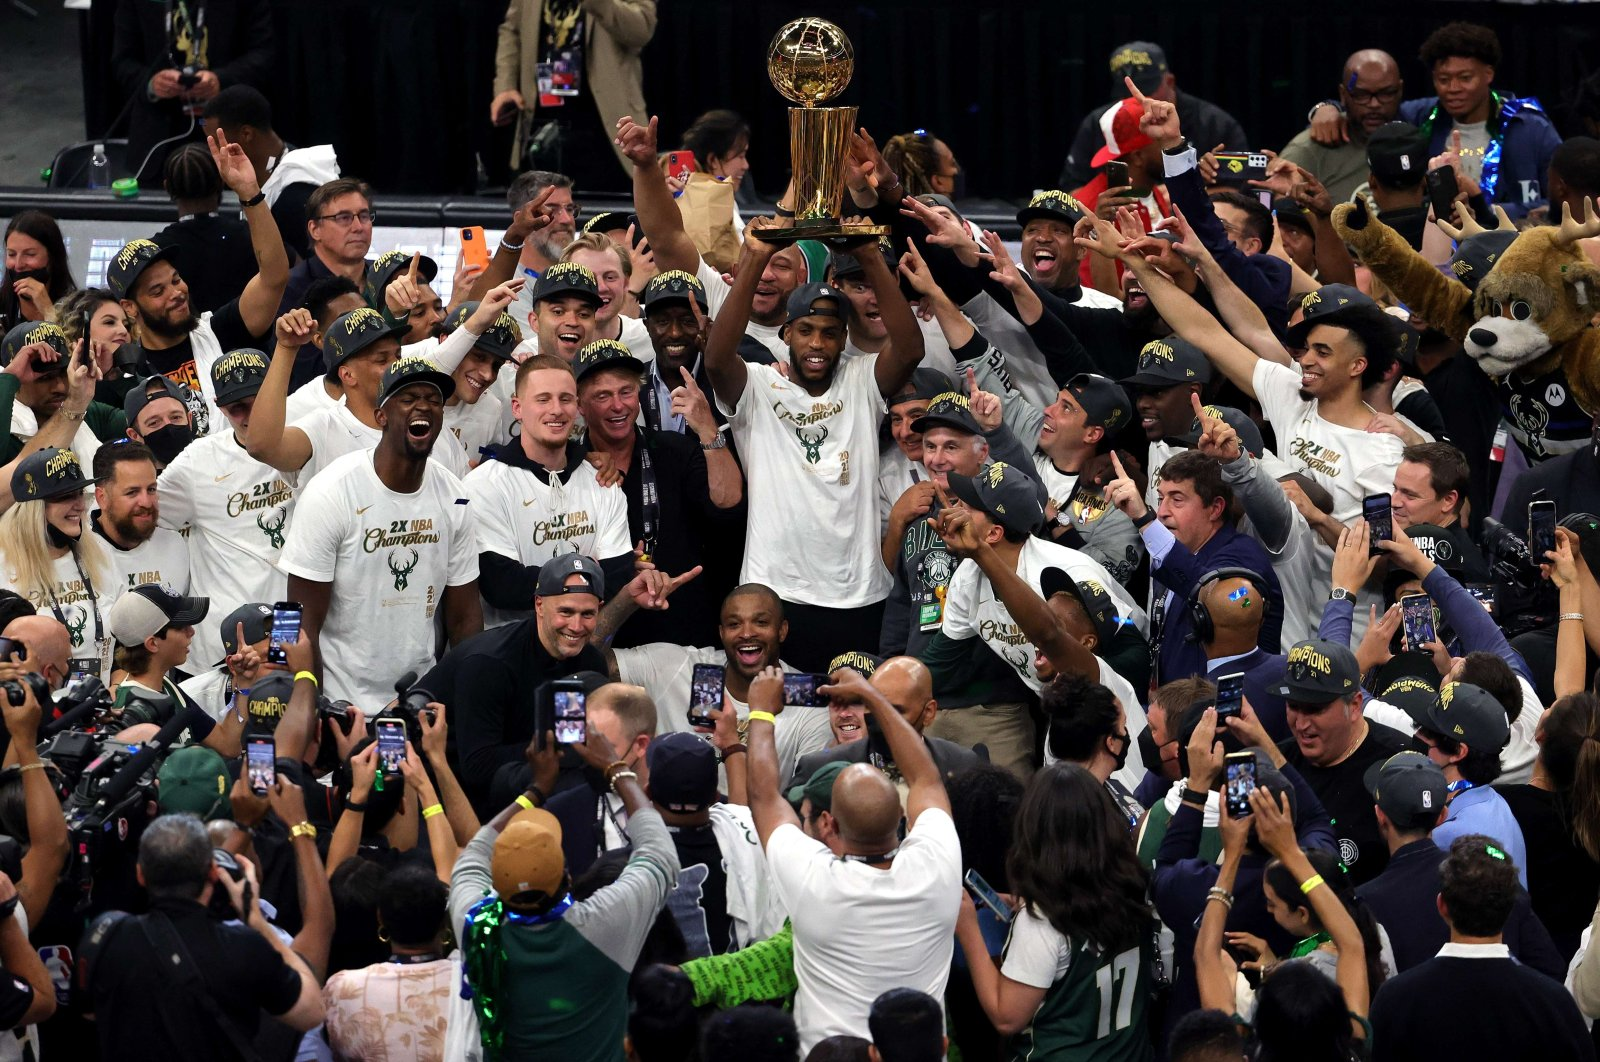 Milwaukee Bucks players and staff celebrate after defeating the Phoenix Suns in Game 6 to win the 2021 NBA Finals at Fiserv Forum in Milwaukee, U.S., July 20, 2021. (AFP Photo)